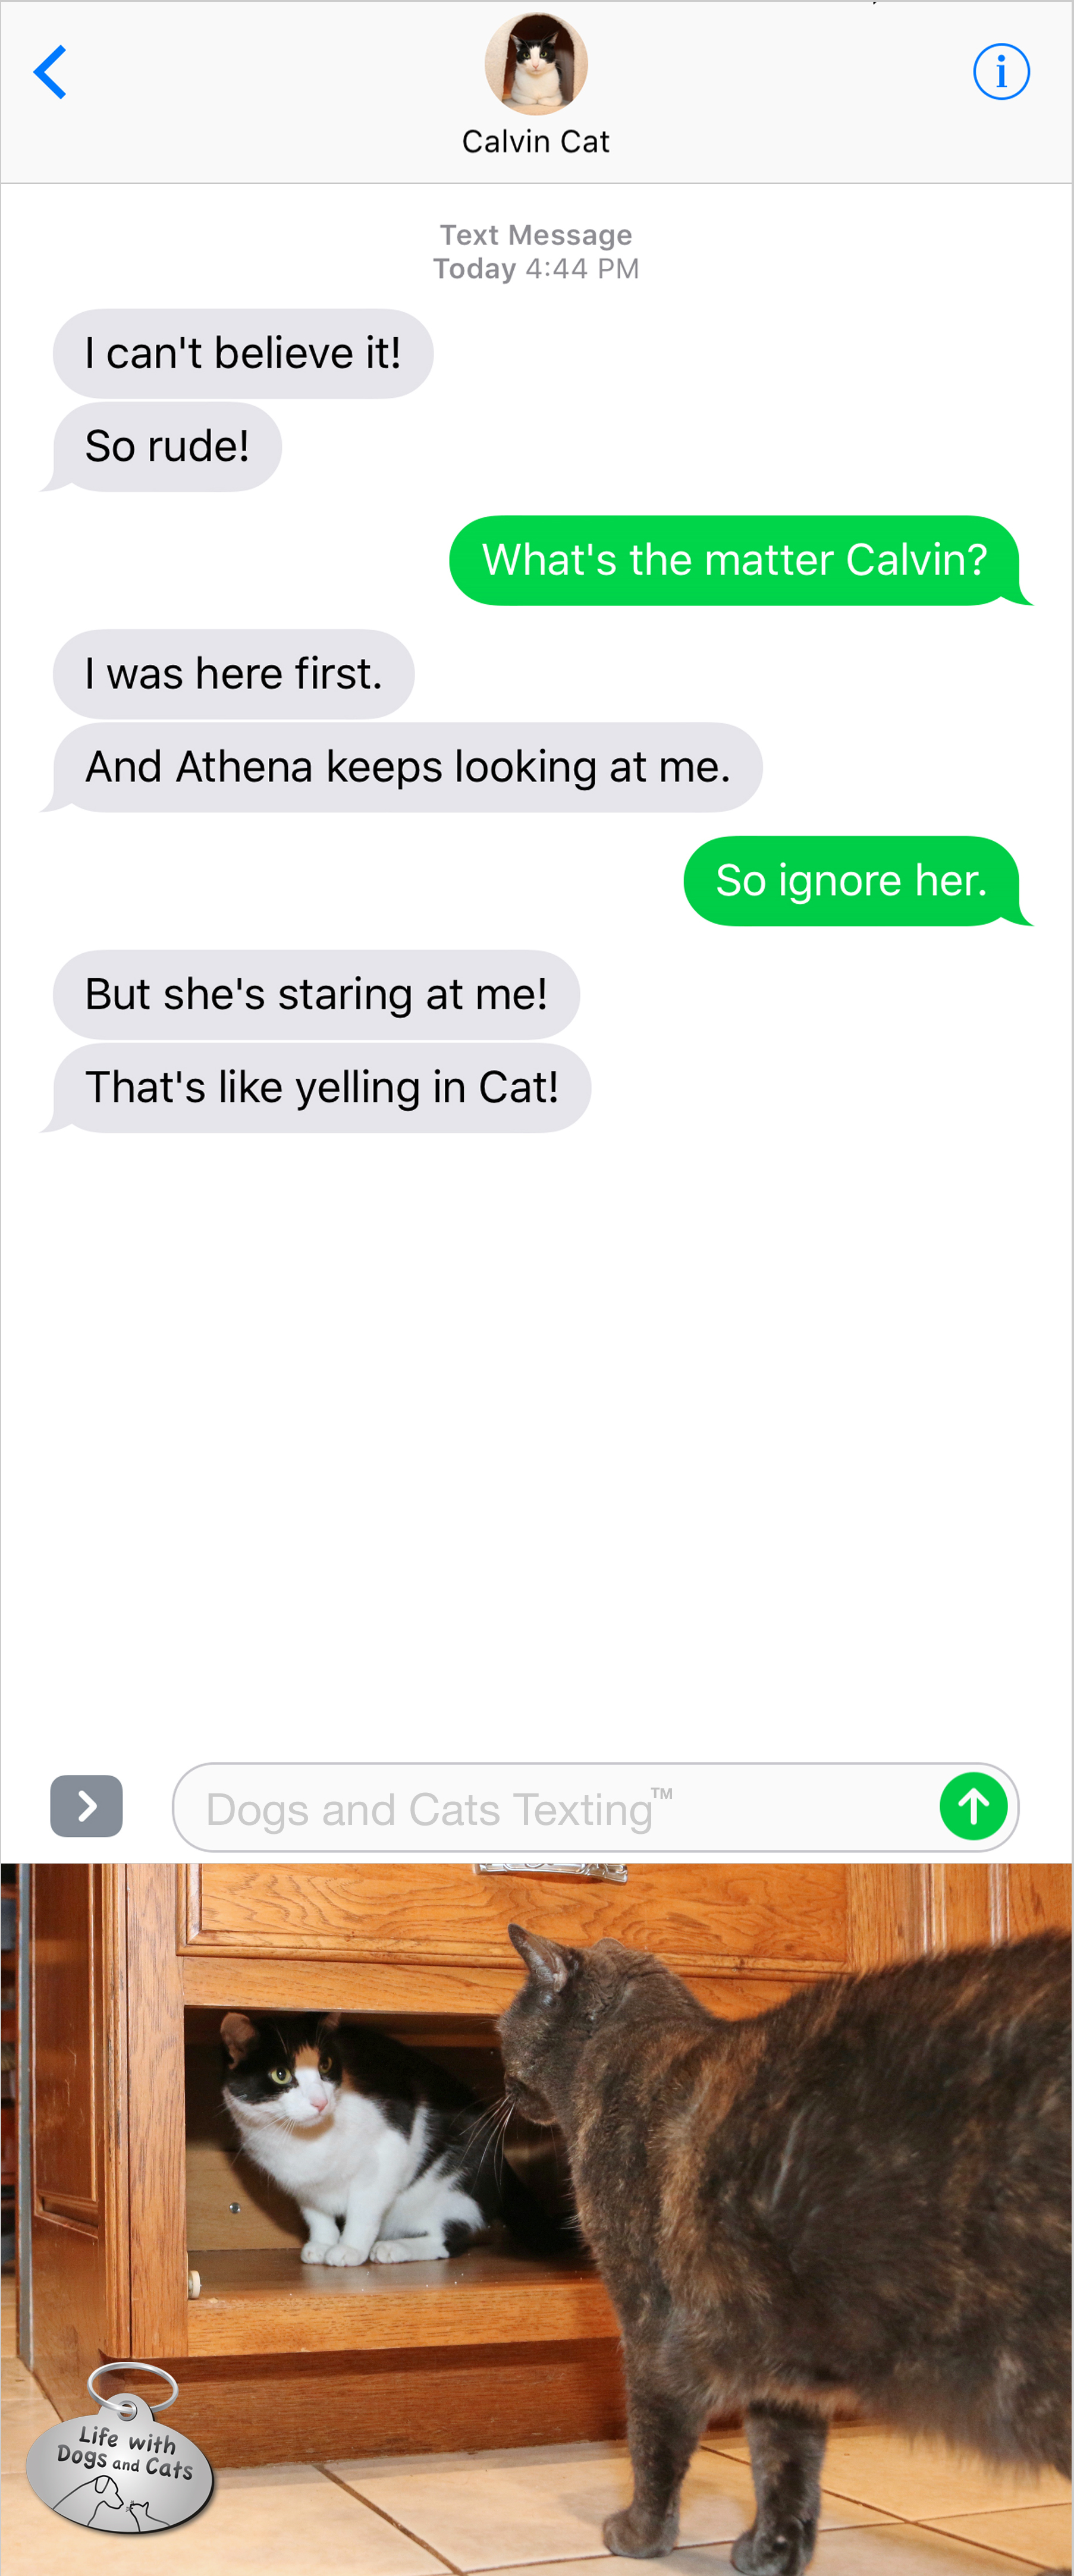 #TextFromCat I can't believe it! So rude! Me: What's the matter Calvin? Cat: I was here first. And Athena keeps looking at me. Me: So ignore her. Cat: But she's staring at me! That's like yelling in Cat!